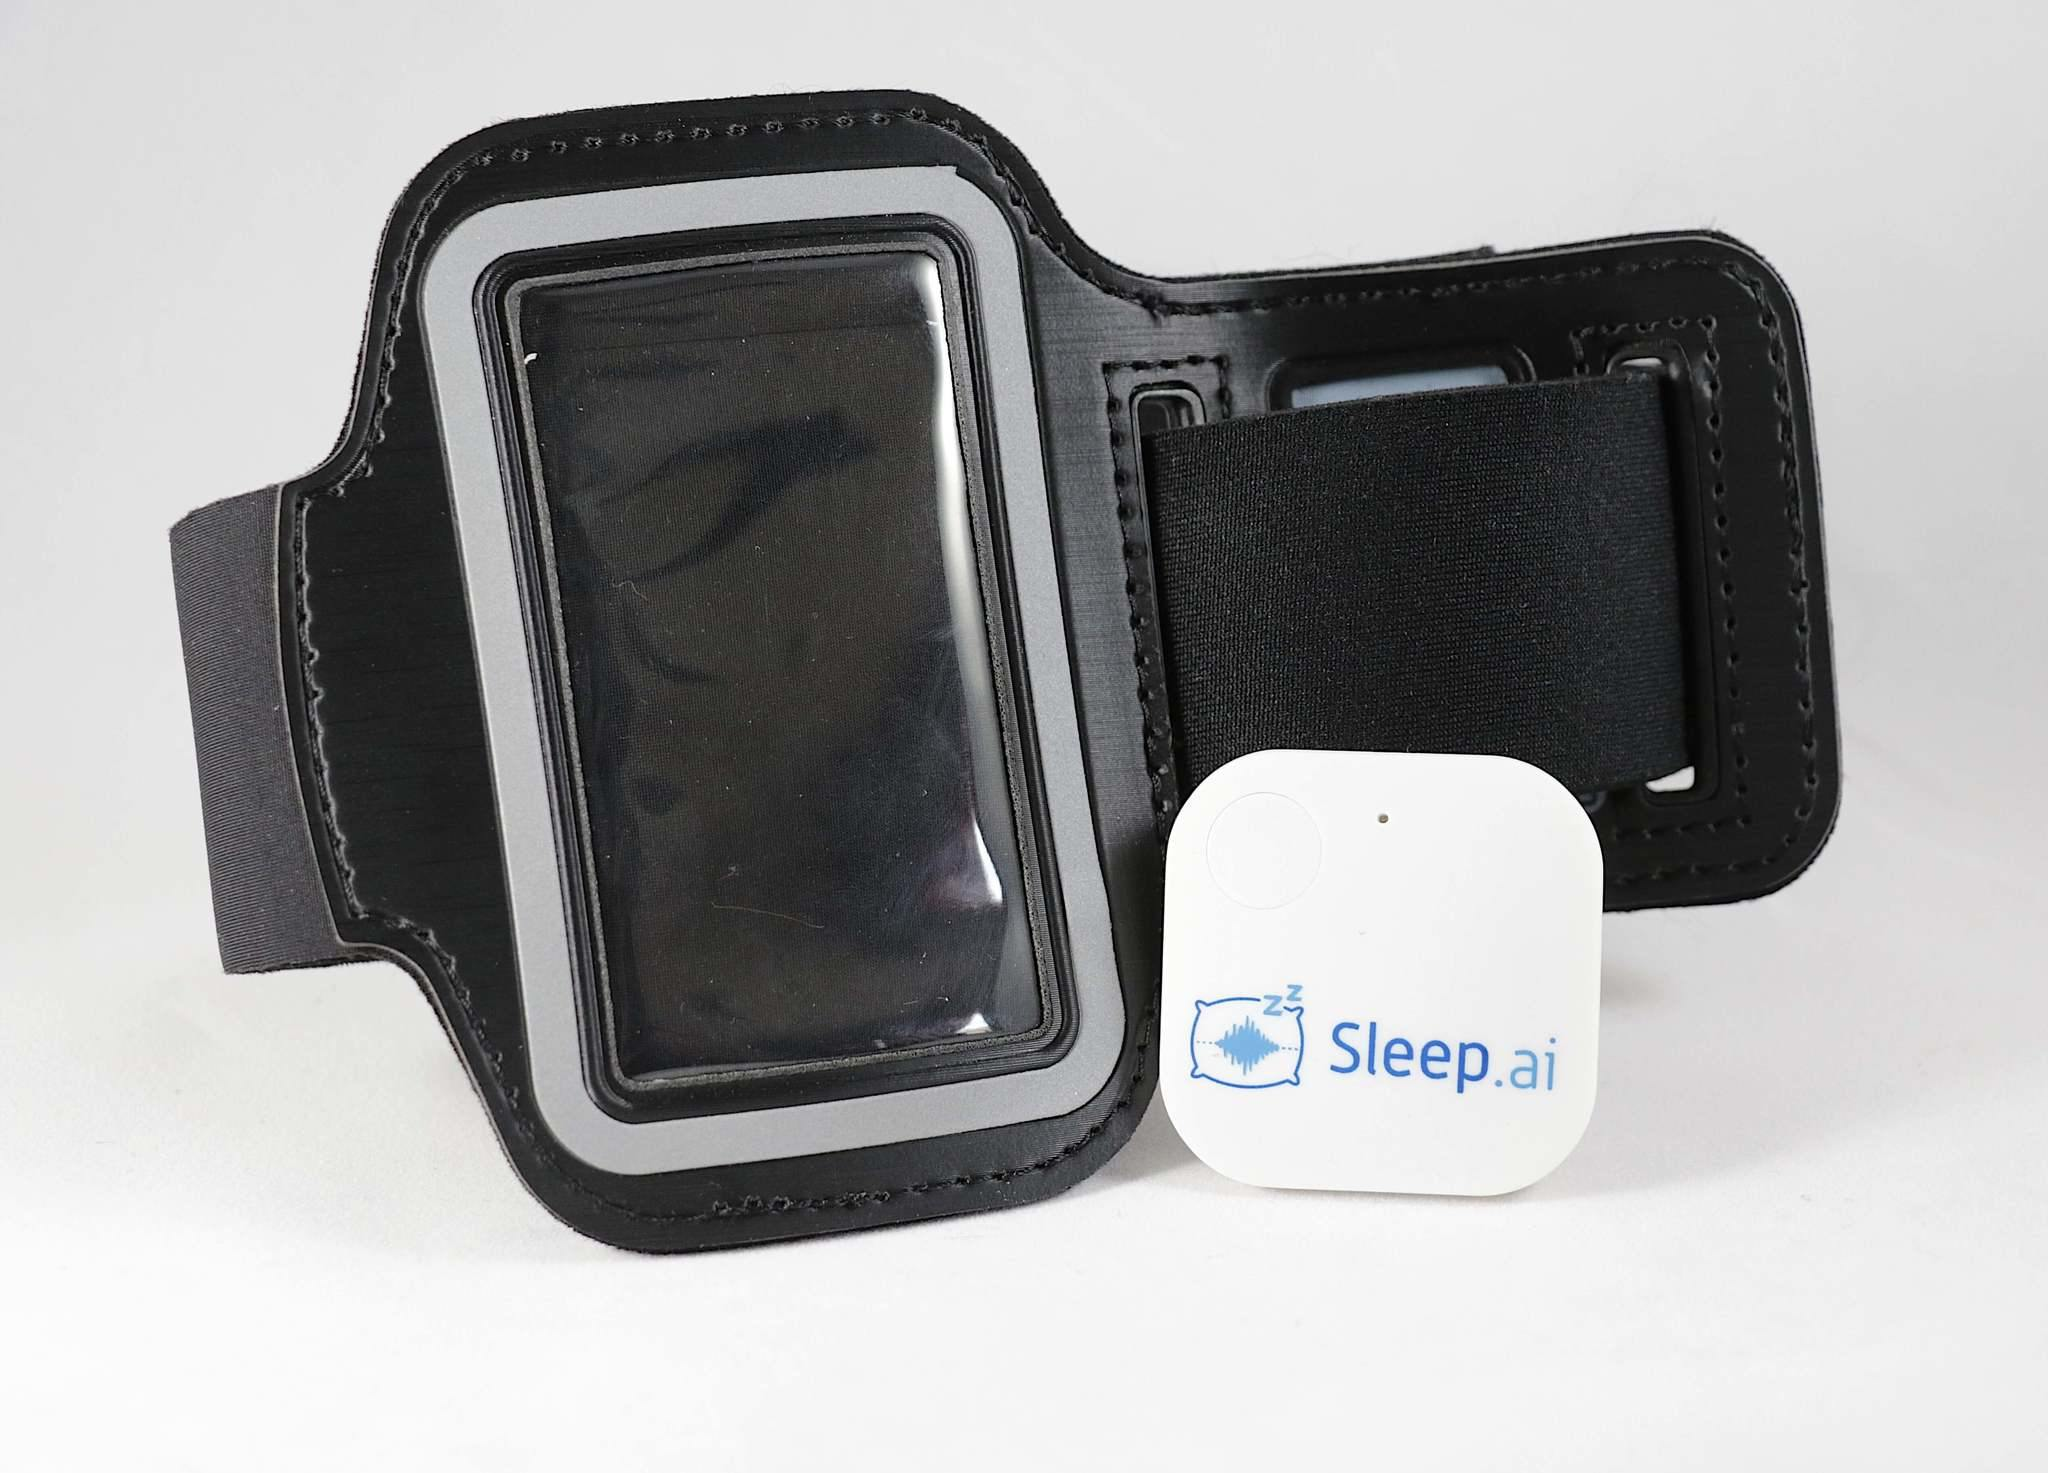 Best Anti Snoring Device 2016 Sleep Ai Wearable Review For Snoring Mobile App And Device